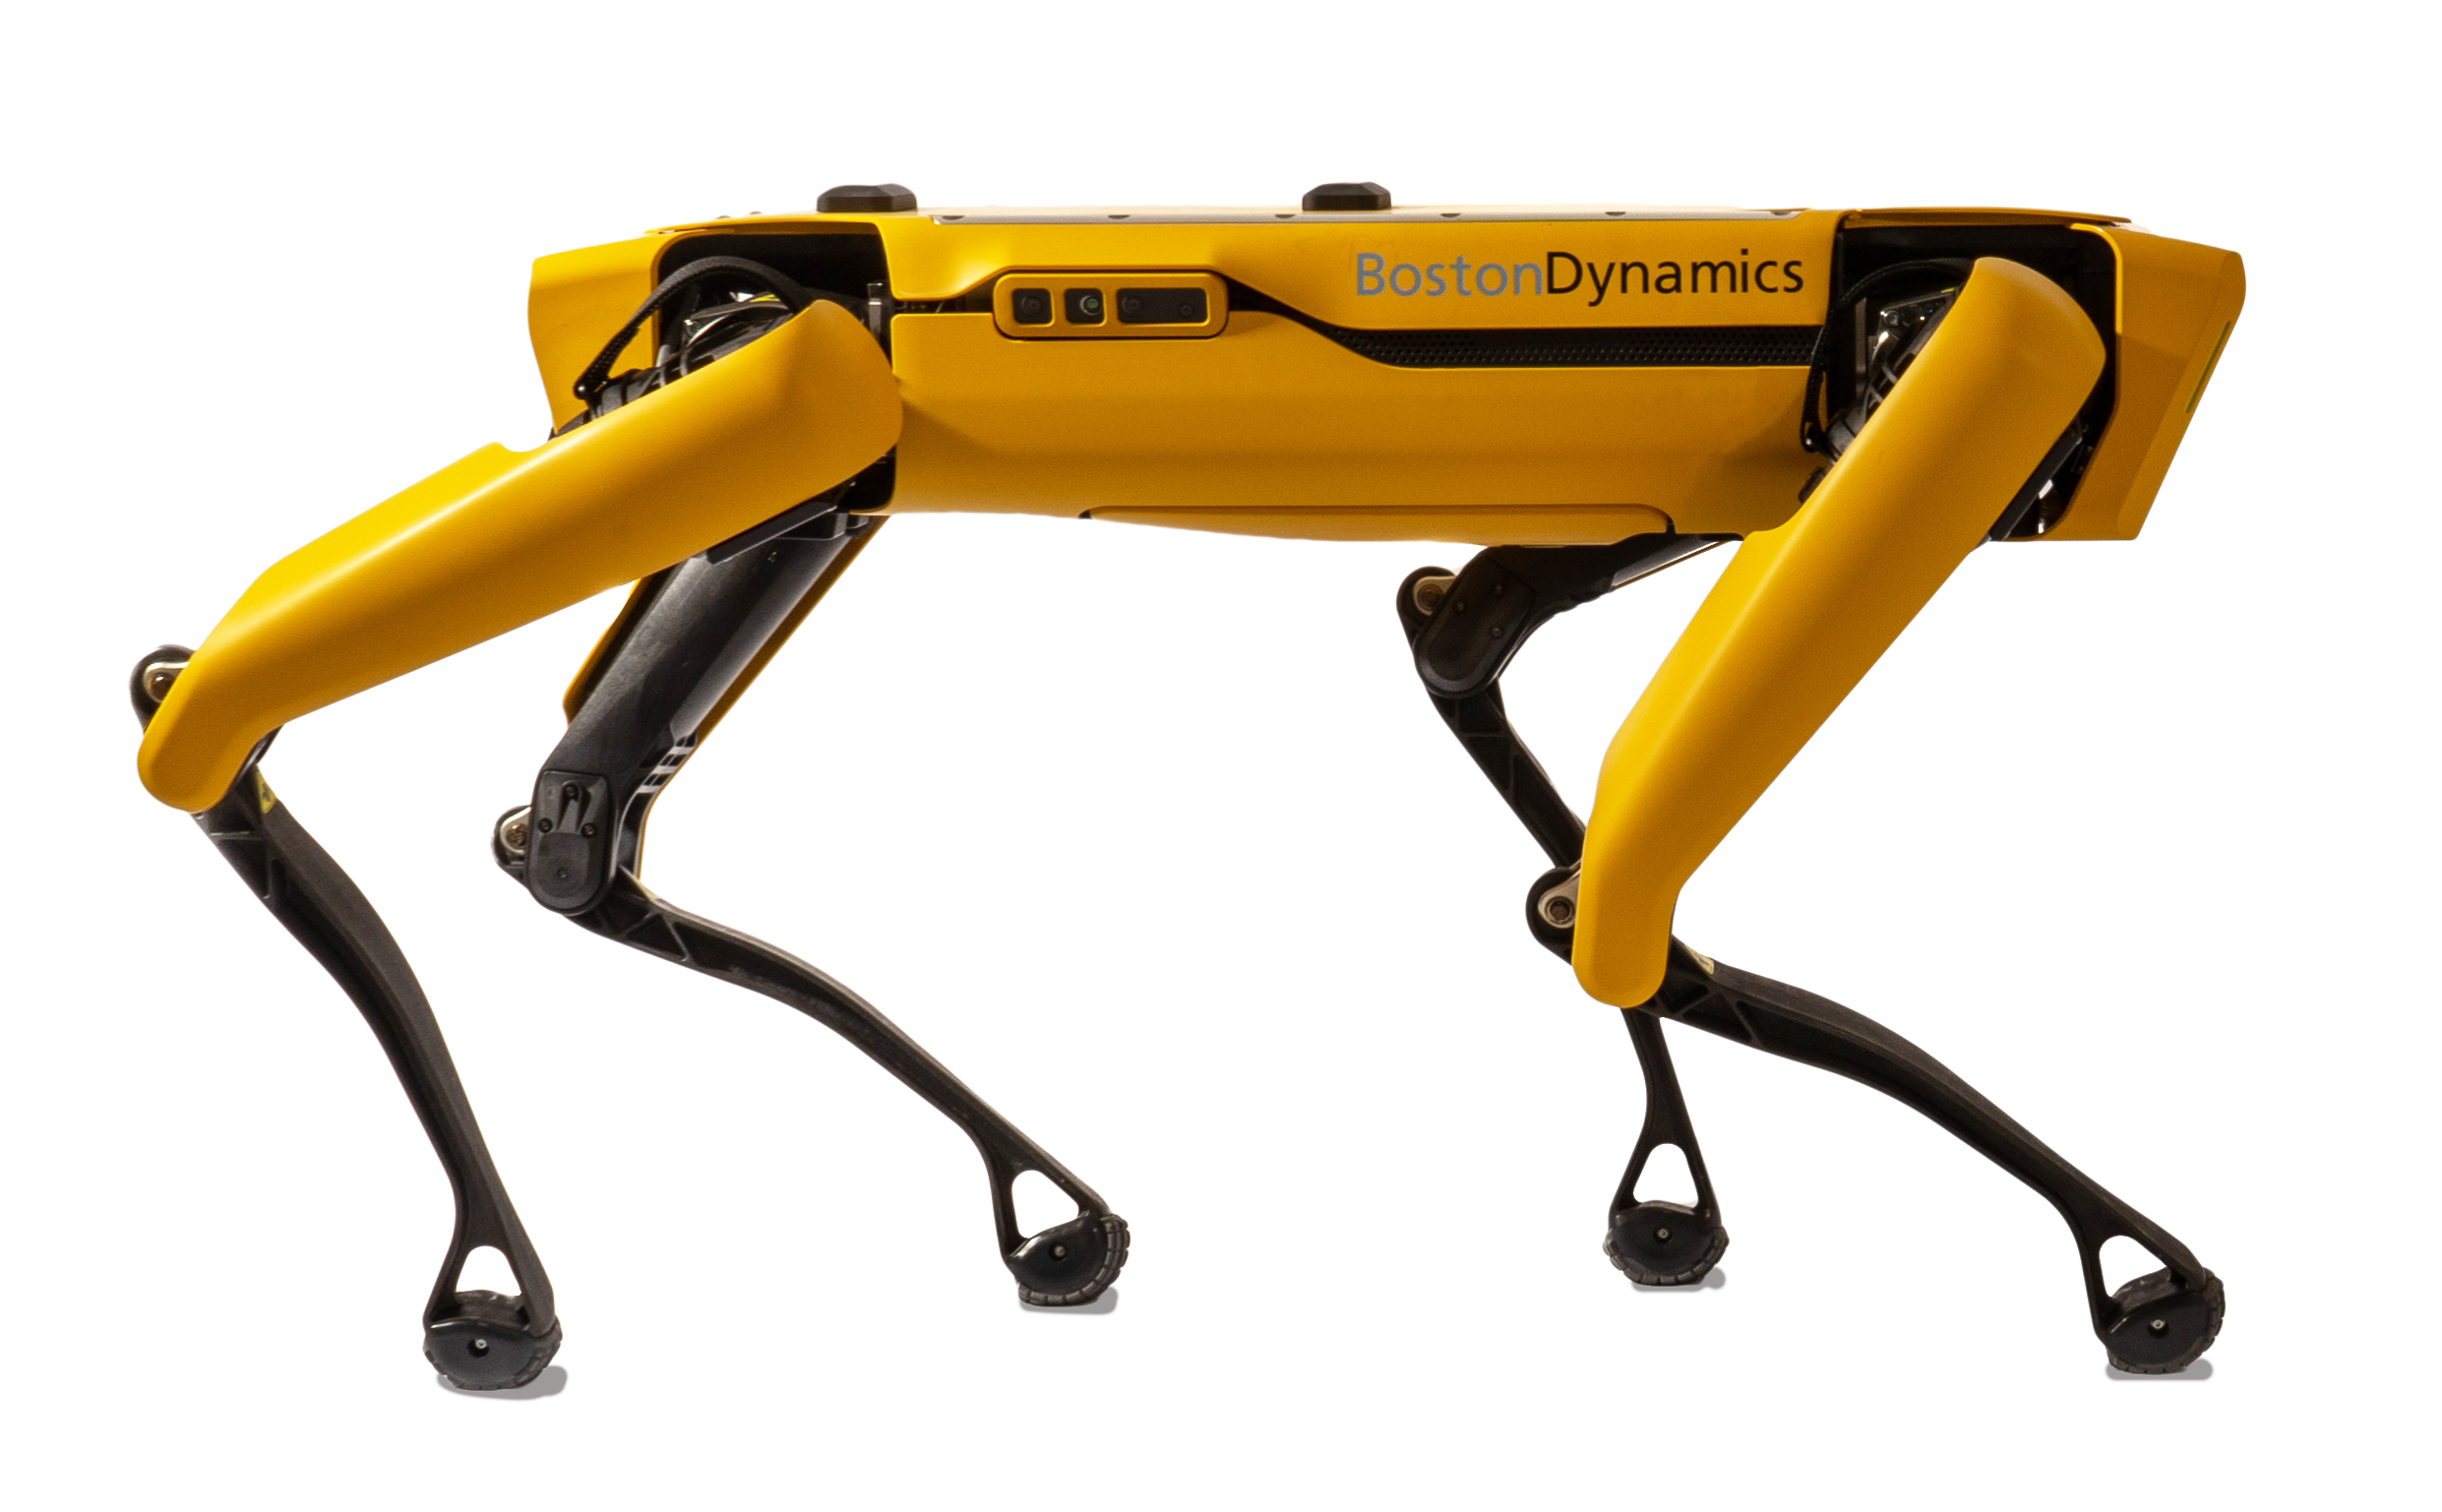 SpotMini-Boston Dynamics Robot Dog